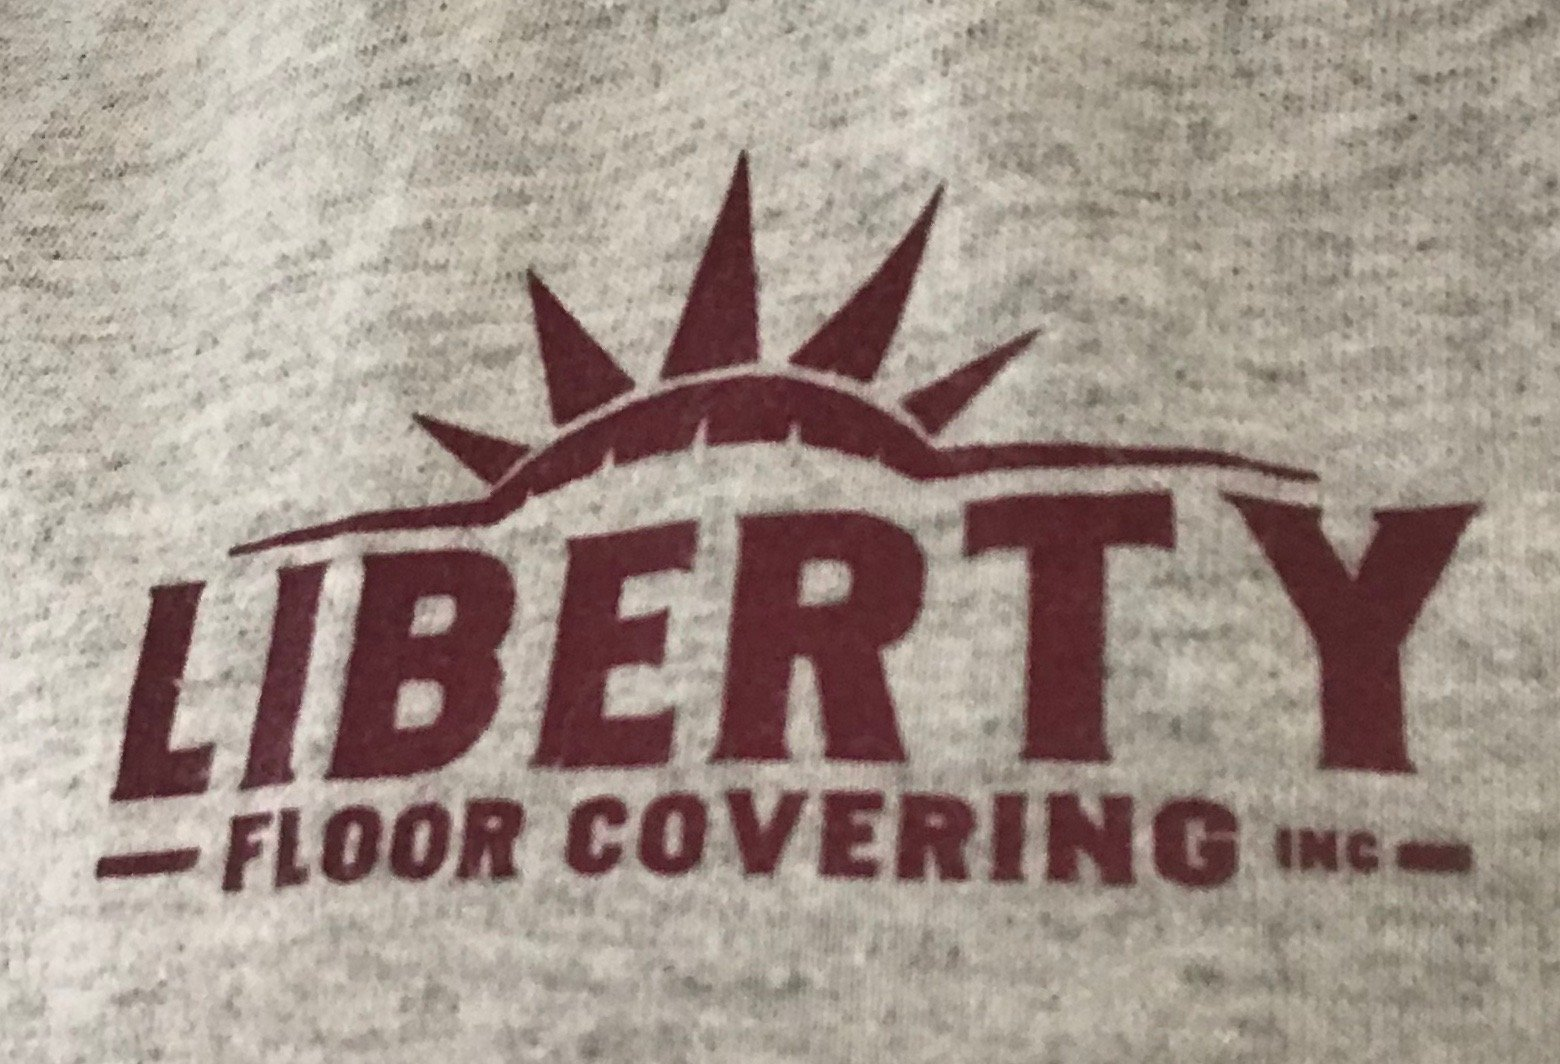 Liberty Floor Covering